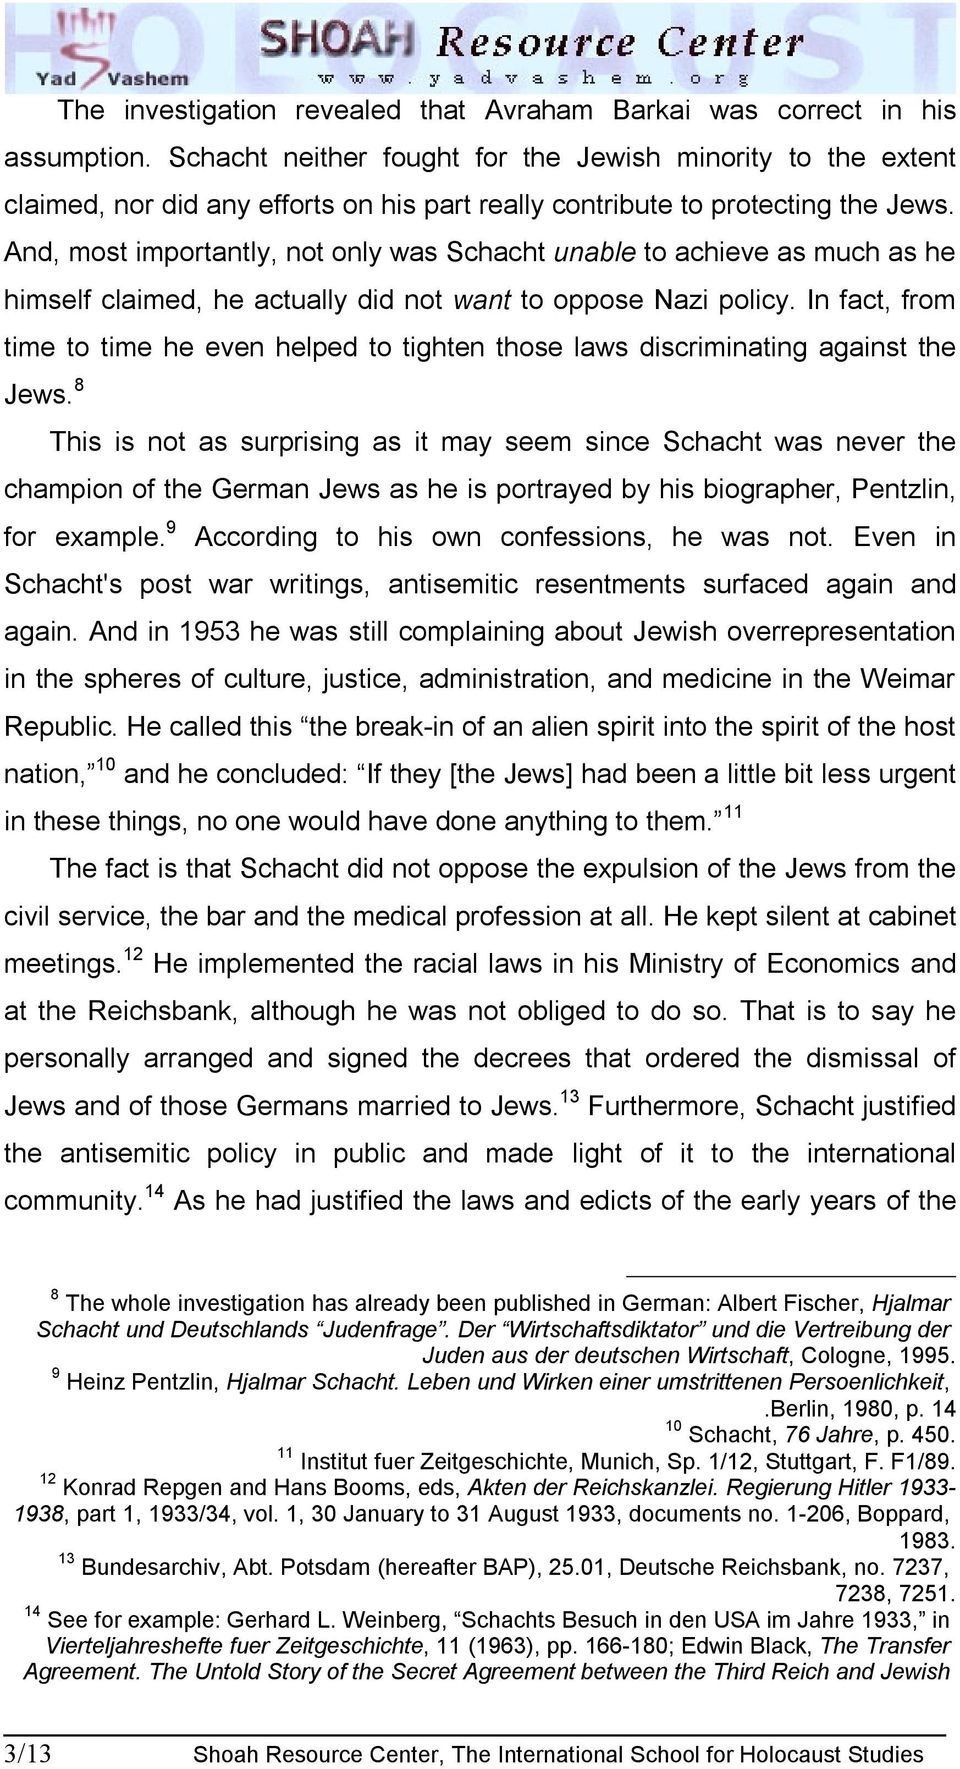 And, most importantly, not only was Schacht unable to achieve as much as he himself claimed, he actually did not want to oppose Nazi policy.